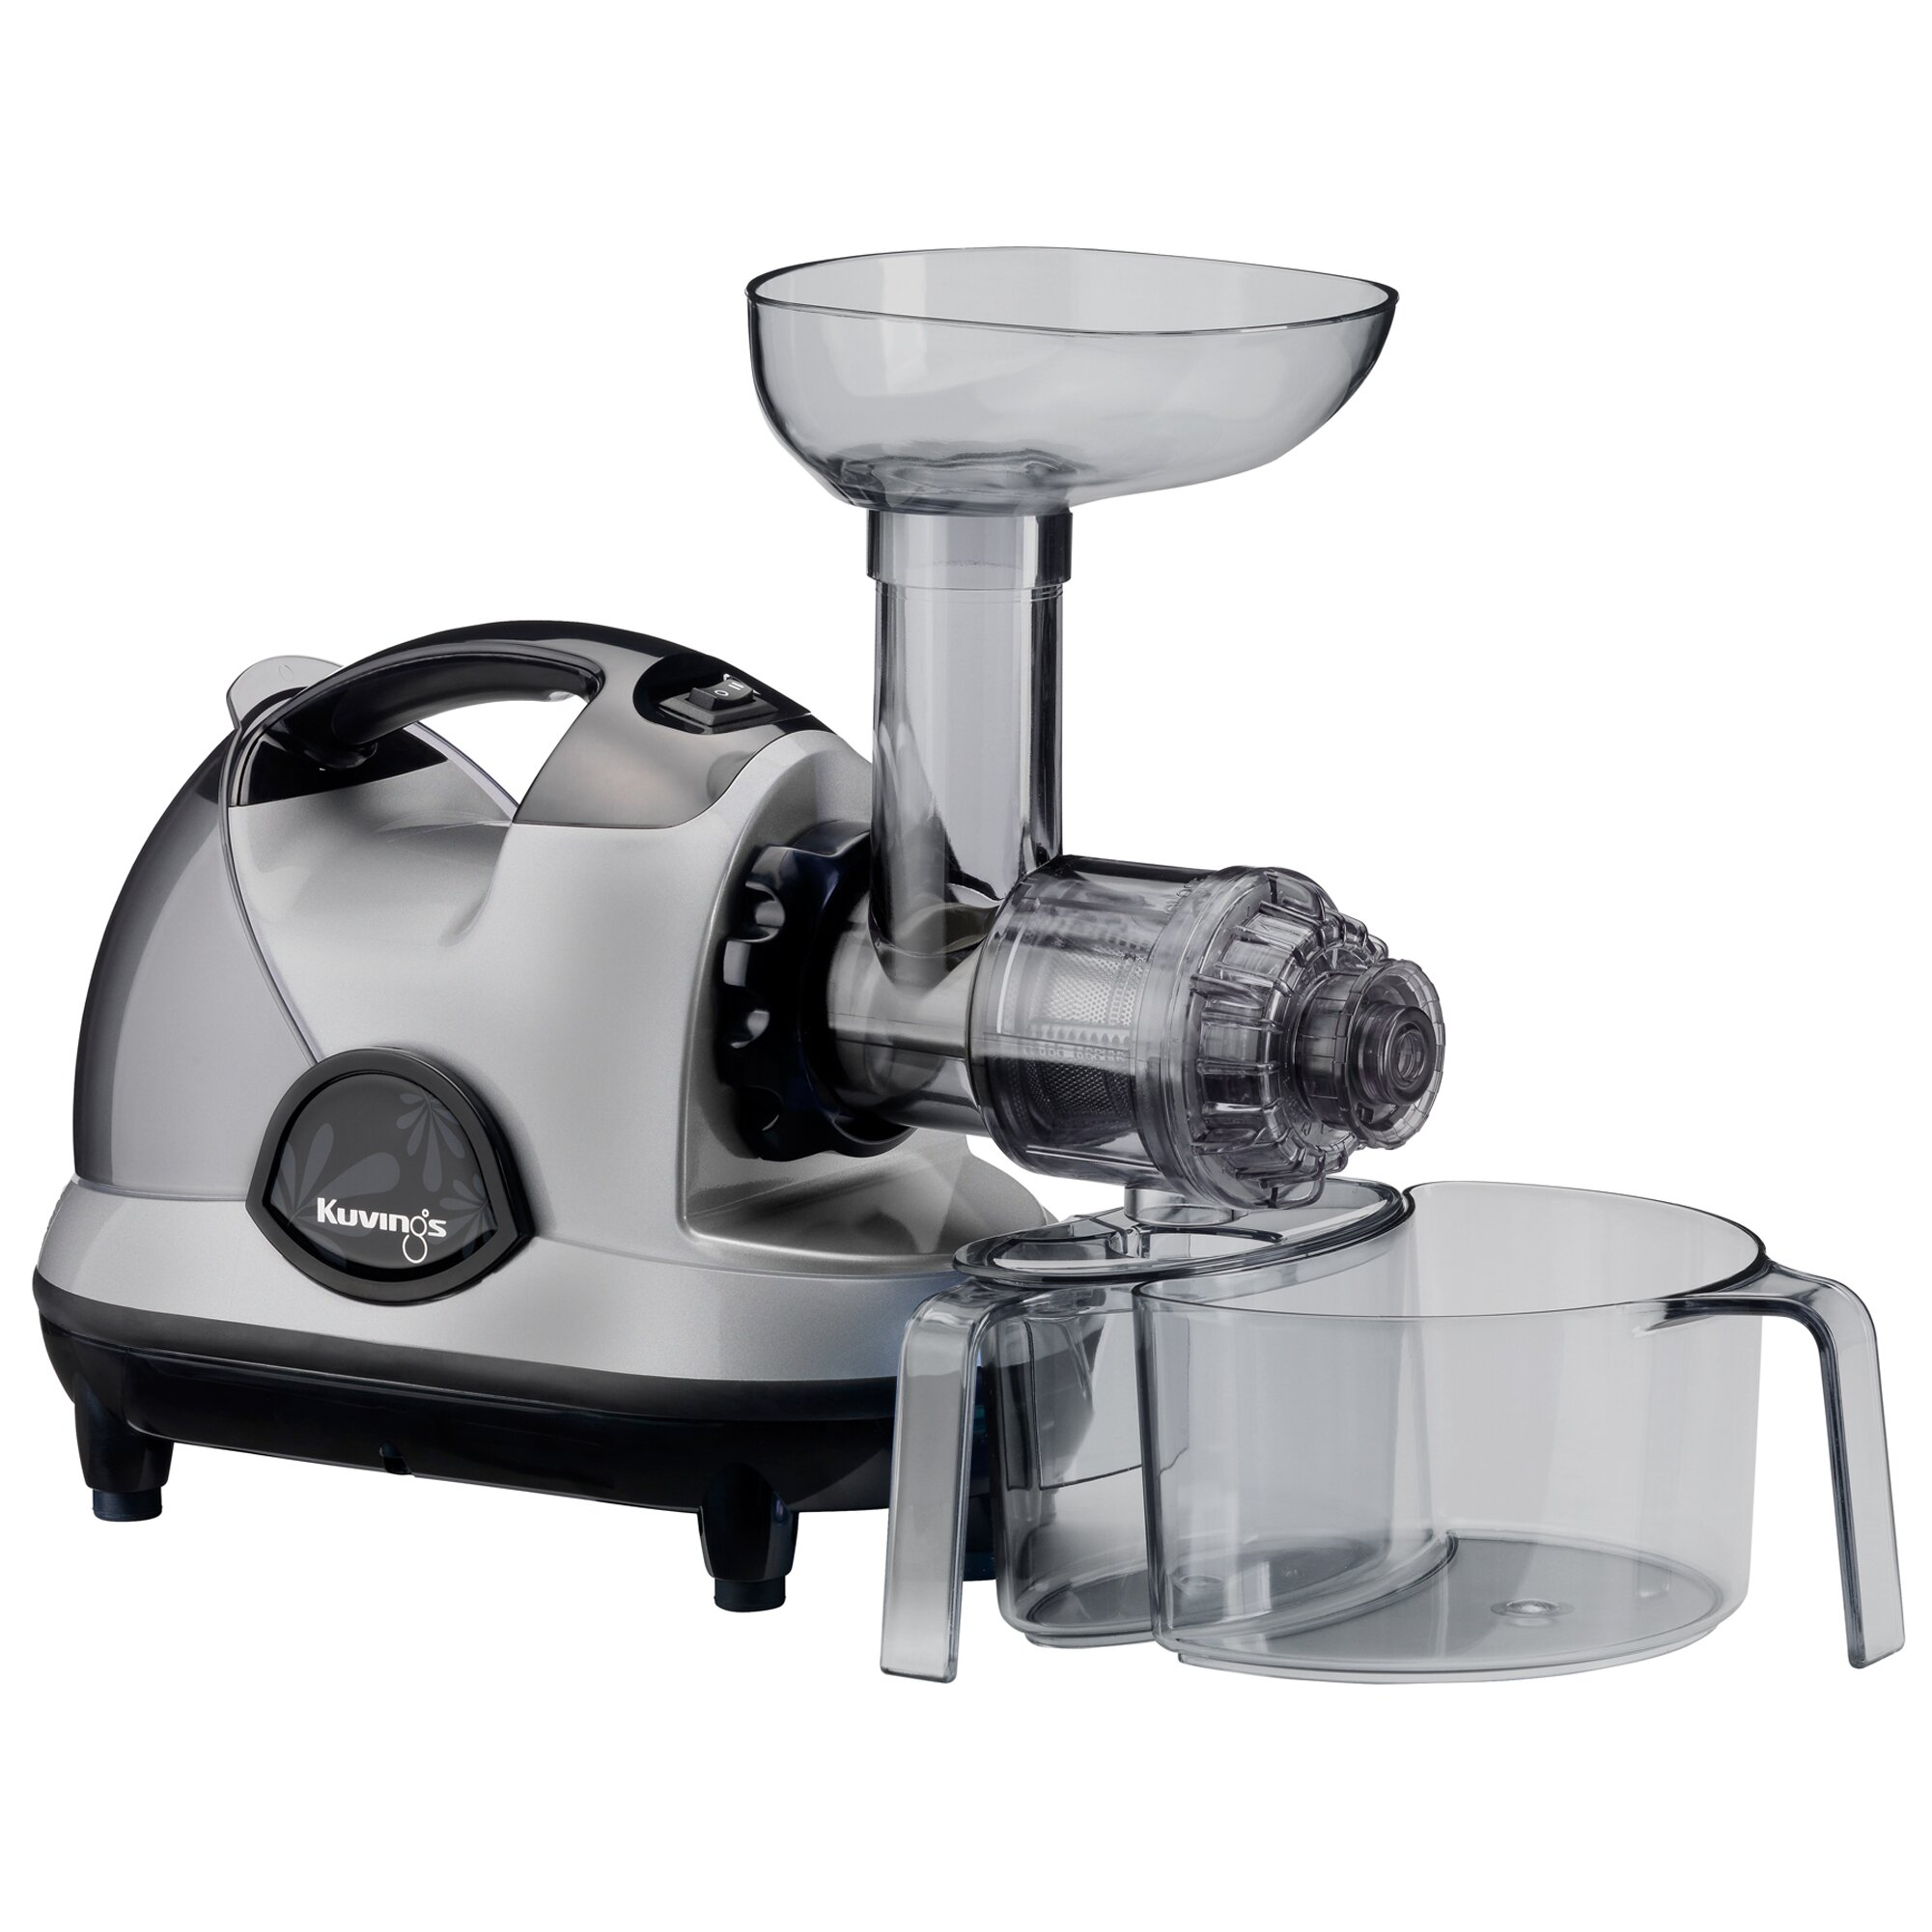 Gemini Slow Juicer Review : KUvINGS Multi-Purpose Slow Juicer & Reviews Wayfair